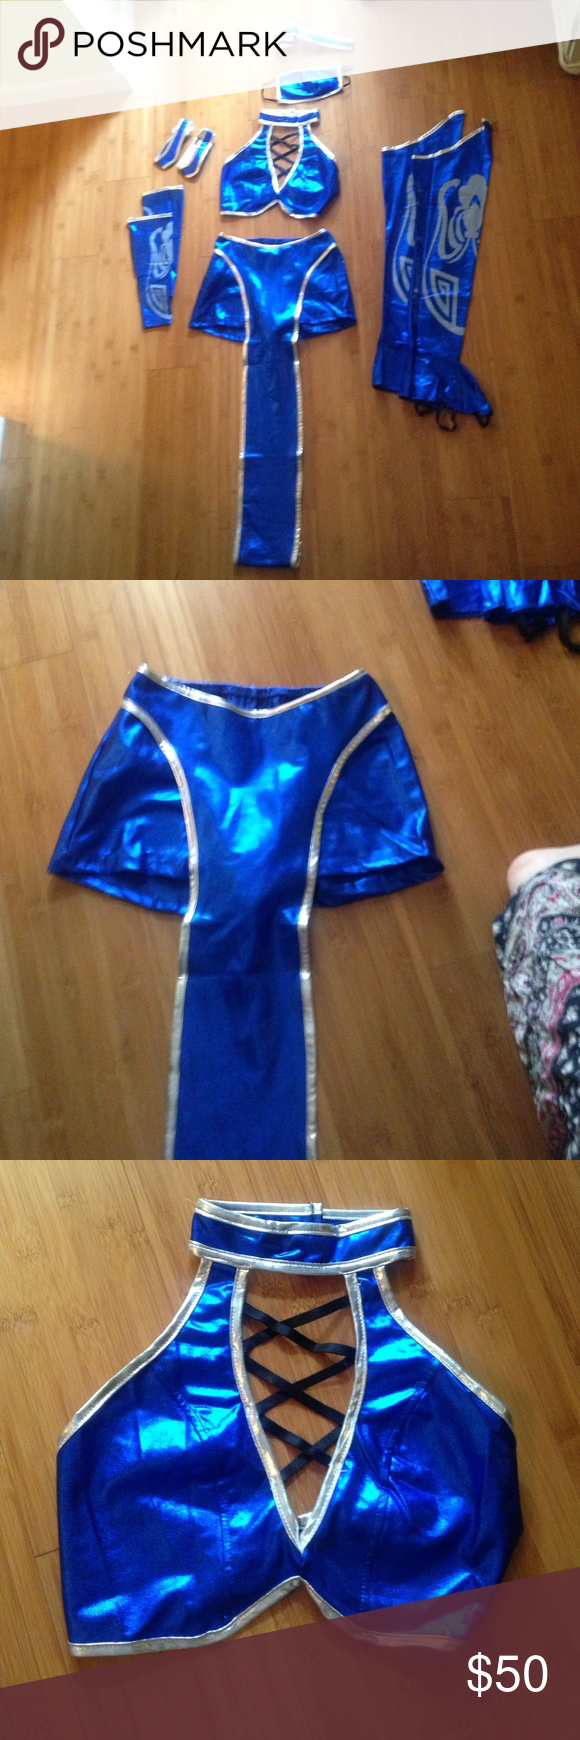 Mortal Kombat Kitana costume size xs Kitana costume comes with mask arm bands leg pieces top and shorts with sash (runs true to size) perfect for ... & Mortal Kombat Kitana costume size xs Kitana costume comes with mask ...